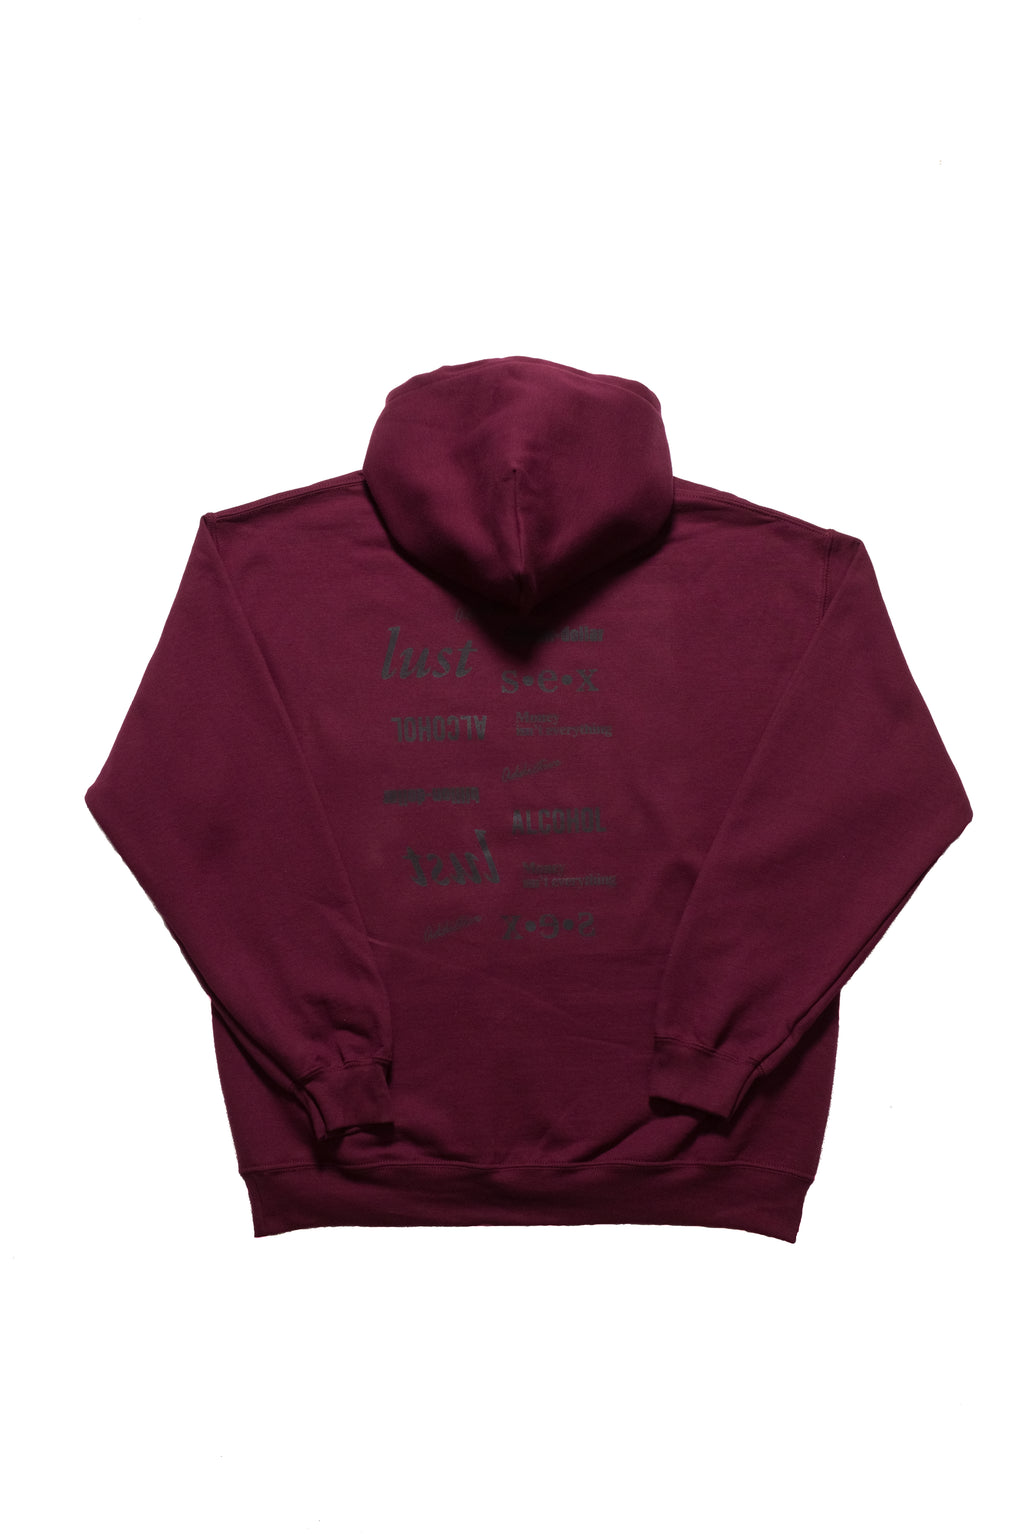 "Addictive""Maroon"" Vices Pullover Hoodie"